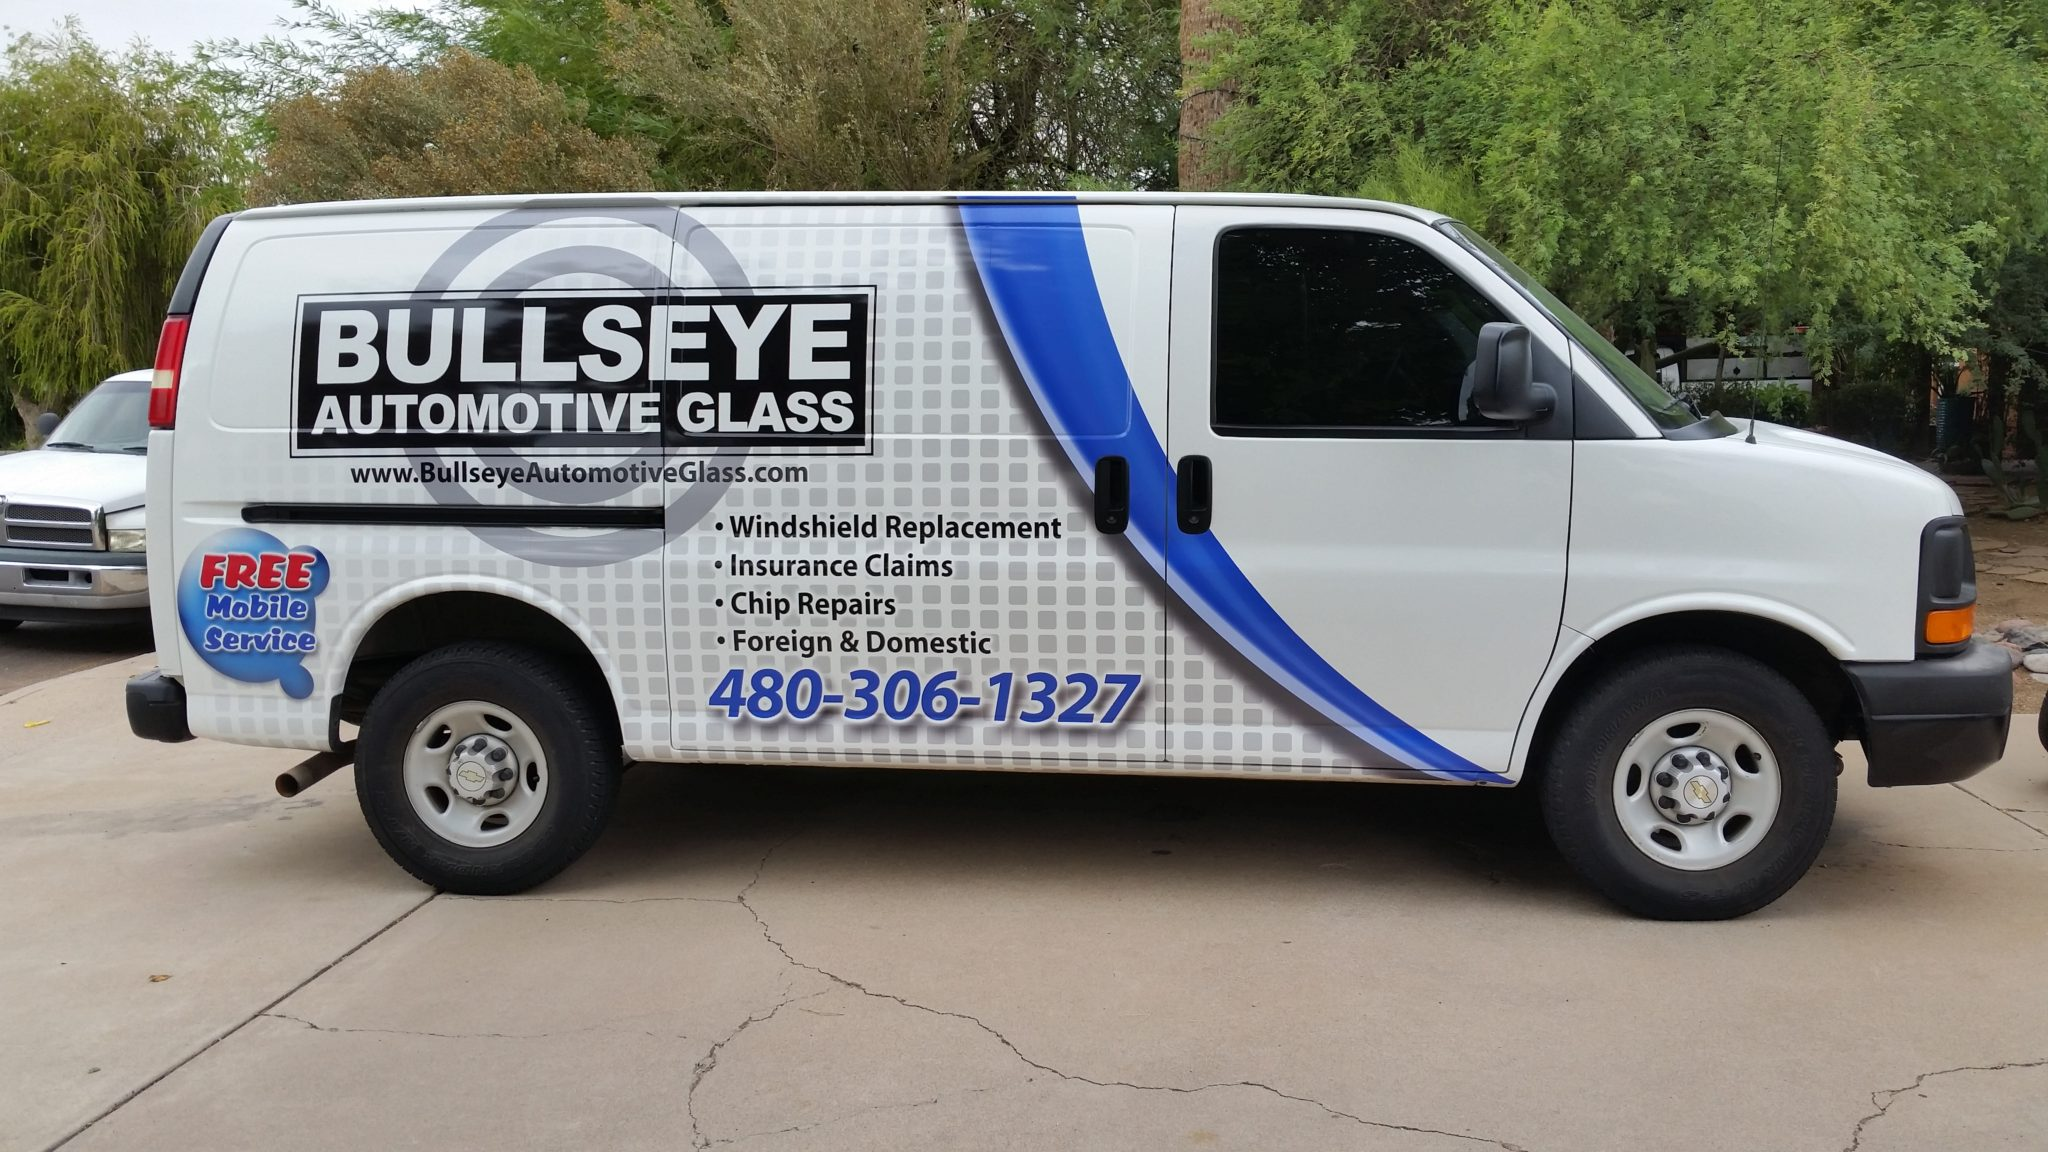 Auto Glass Quote How To Get An Auto Glass Replacement And Windshield Repair Quote